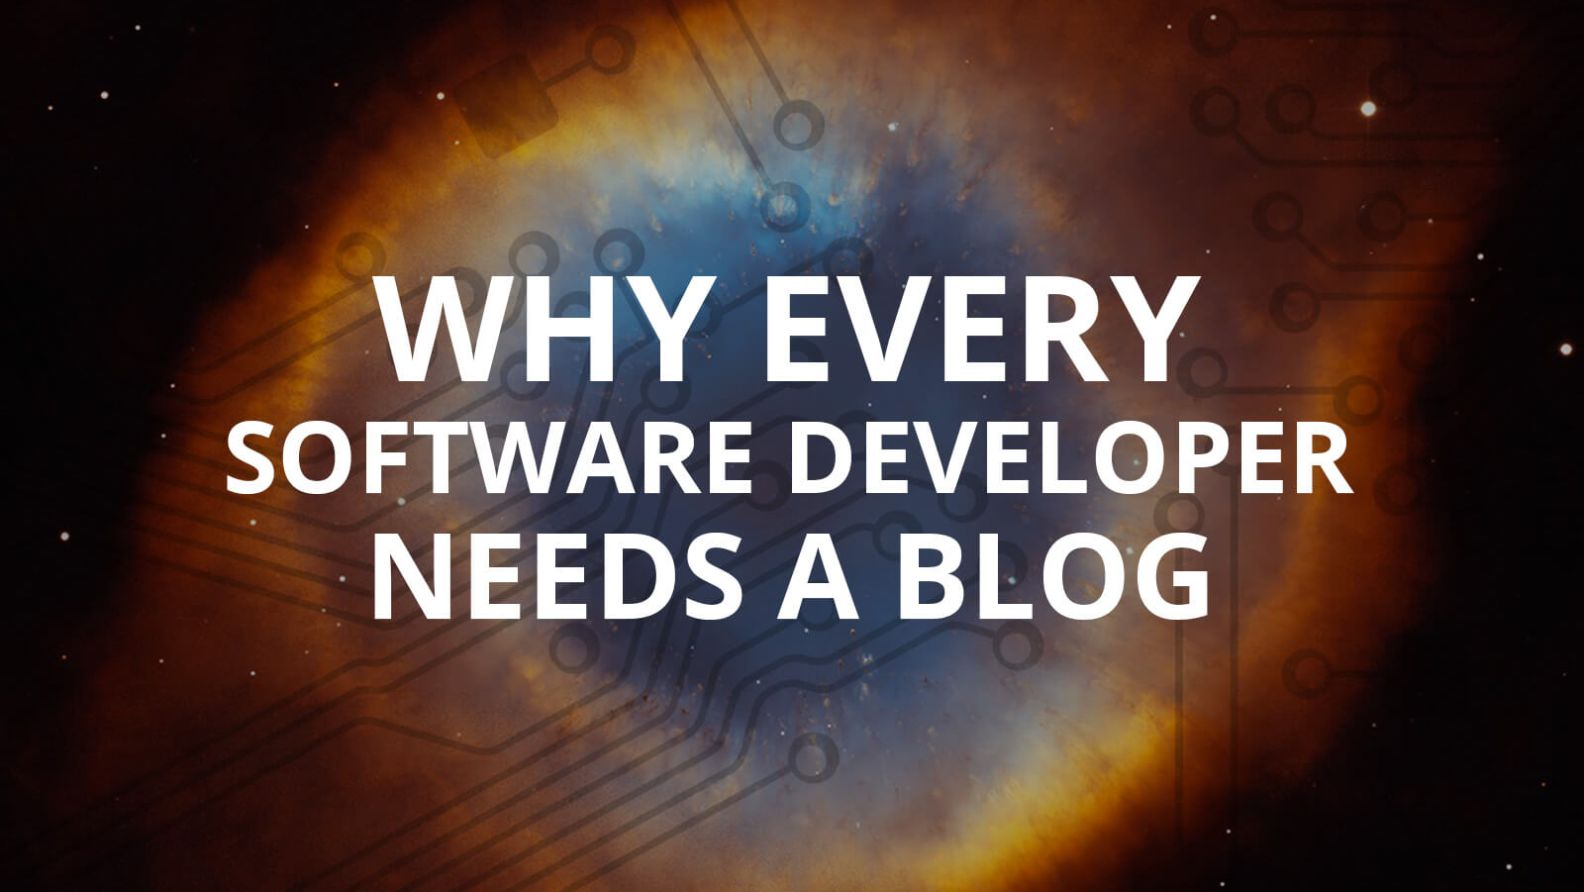 Why Every Software Developer Needs a Blog